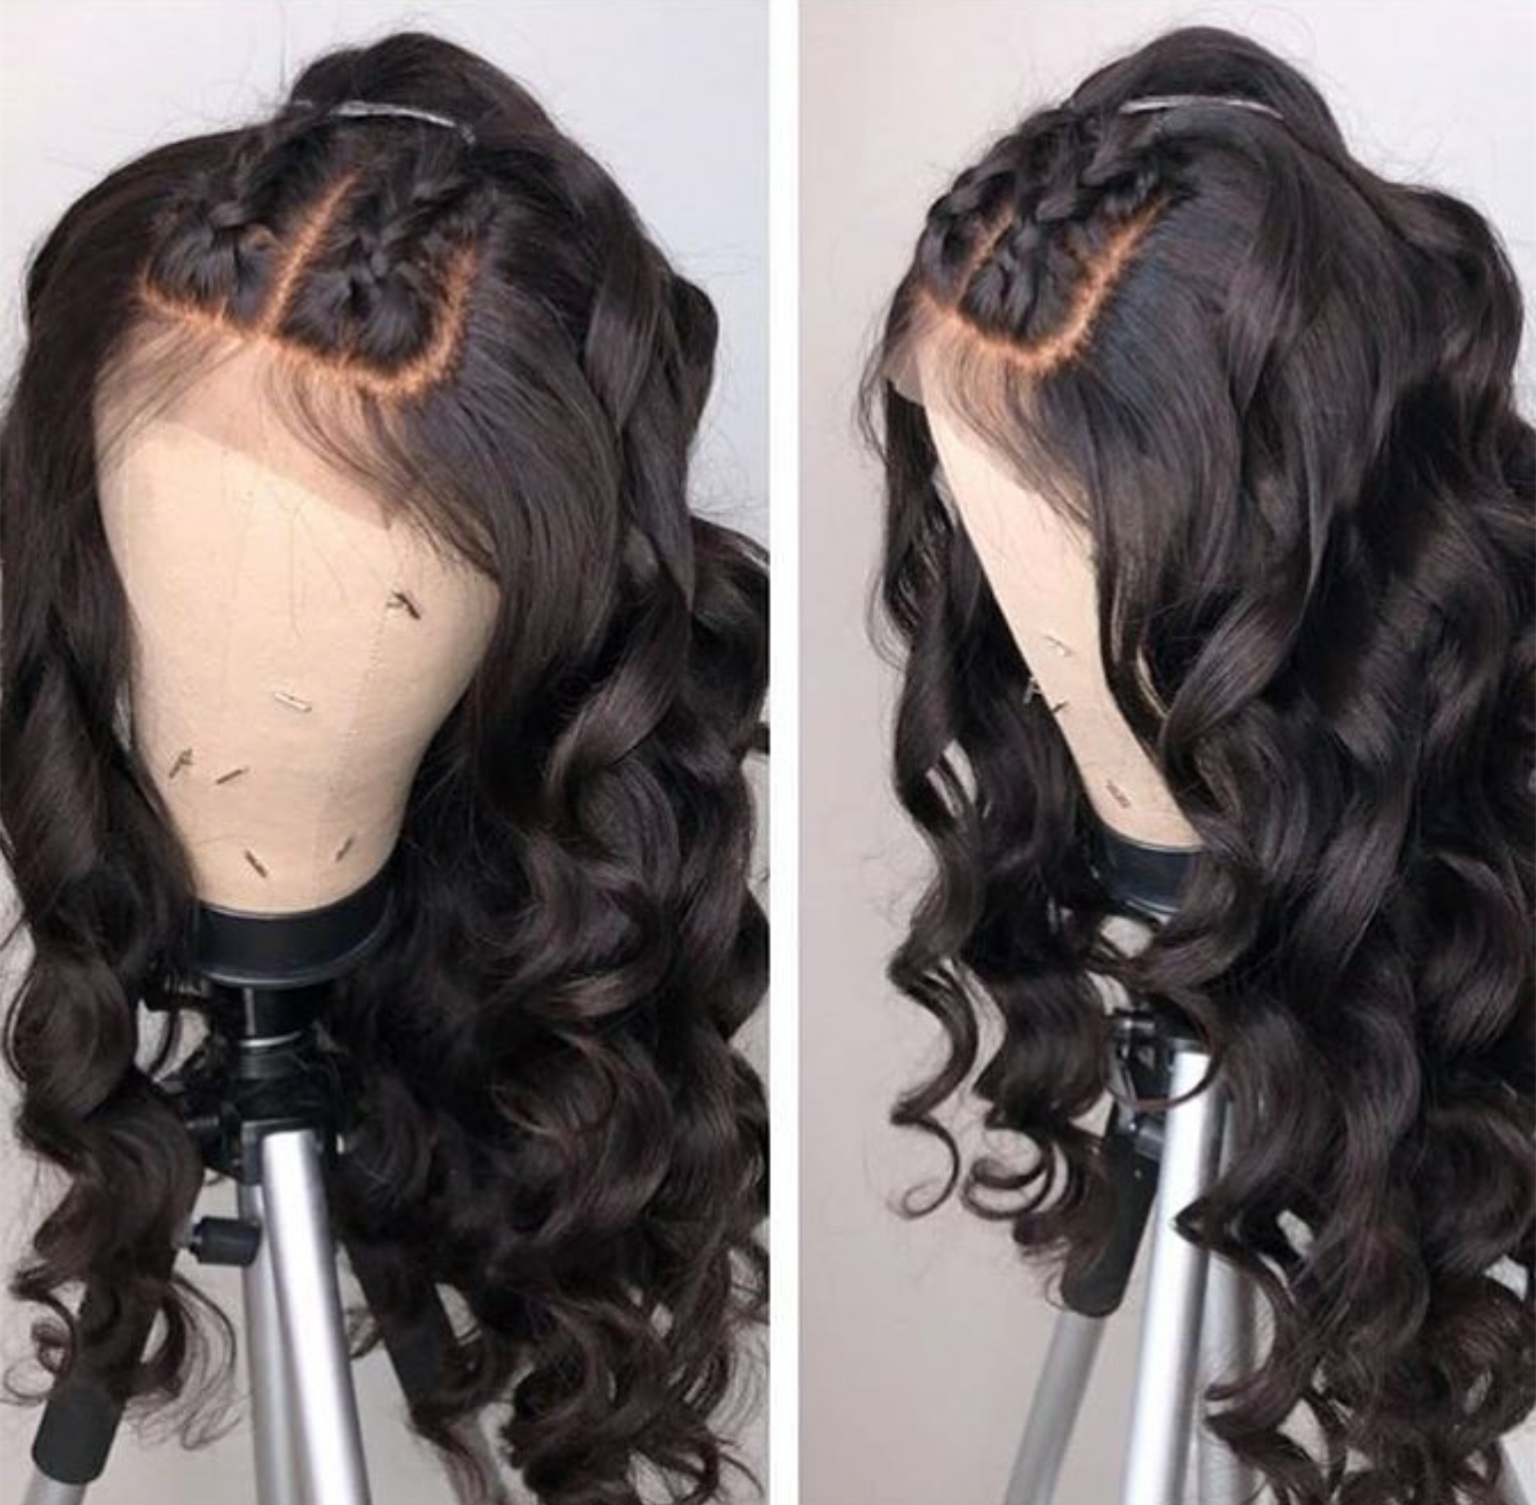 Lace Front Human Hair Wigs Body Wave Fake Scalp Wig For Black Women Pre Plucked With Baby Hair Remy Human Hair Wig 13x6